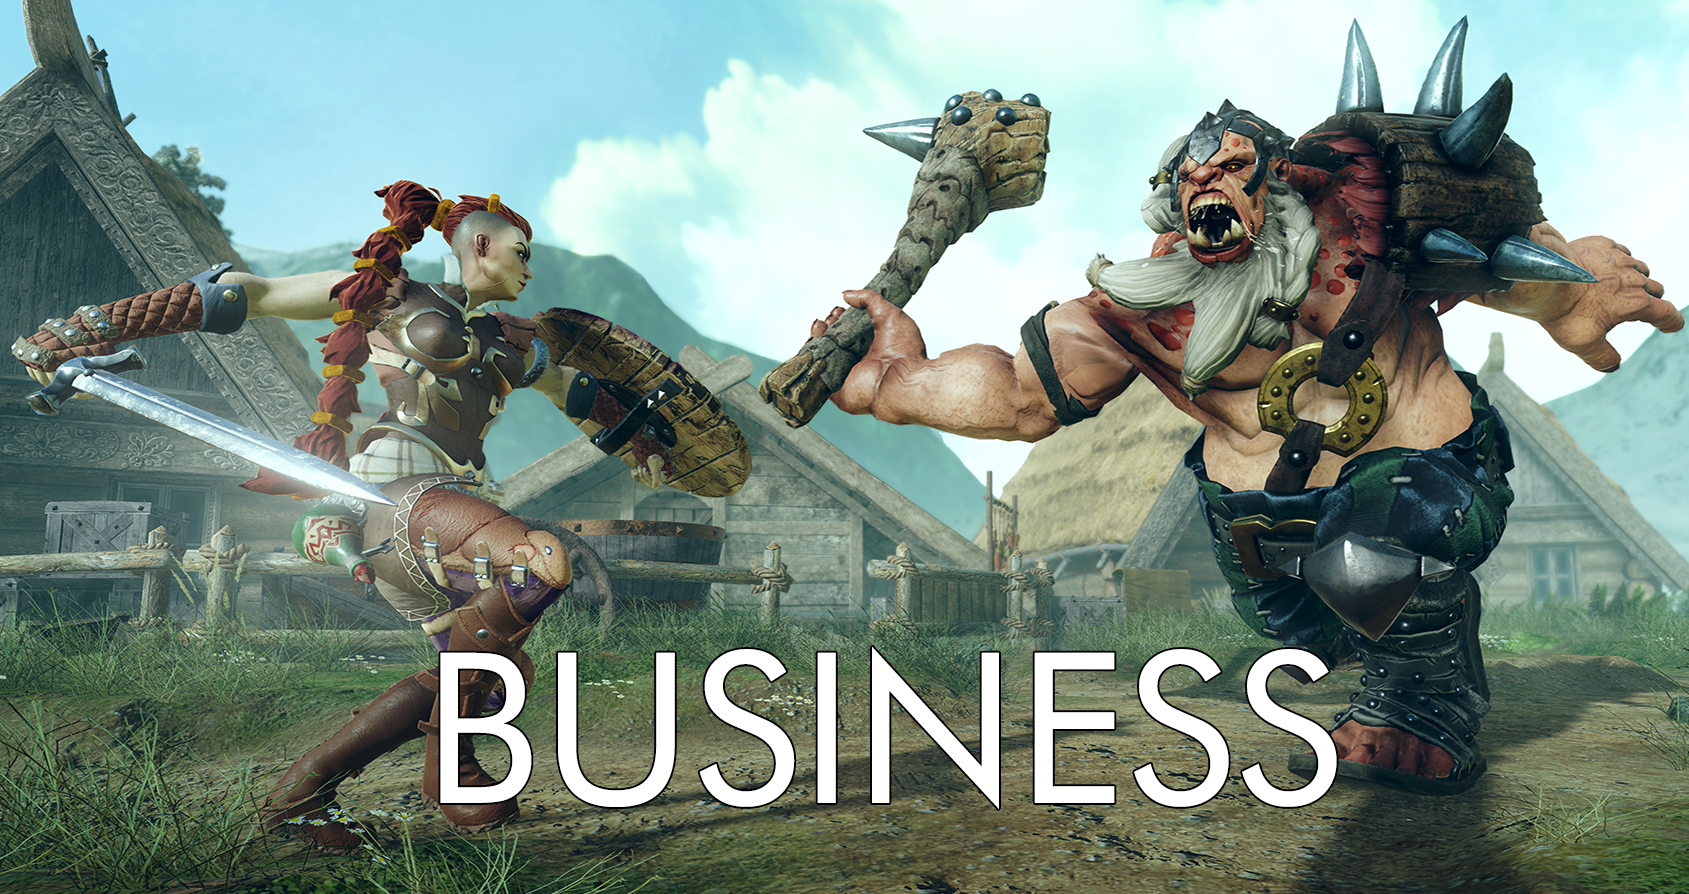 This Week In The Business: How Can We Make It Up To You?